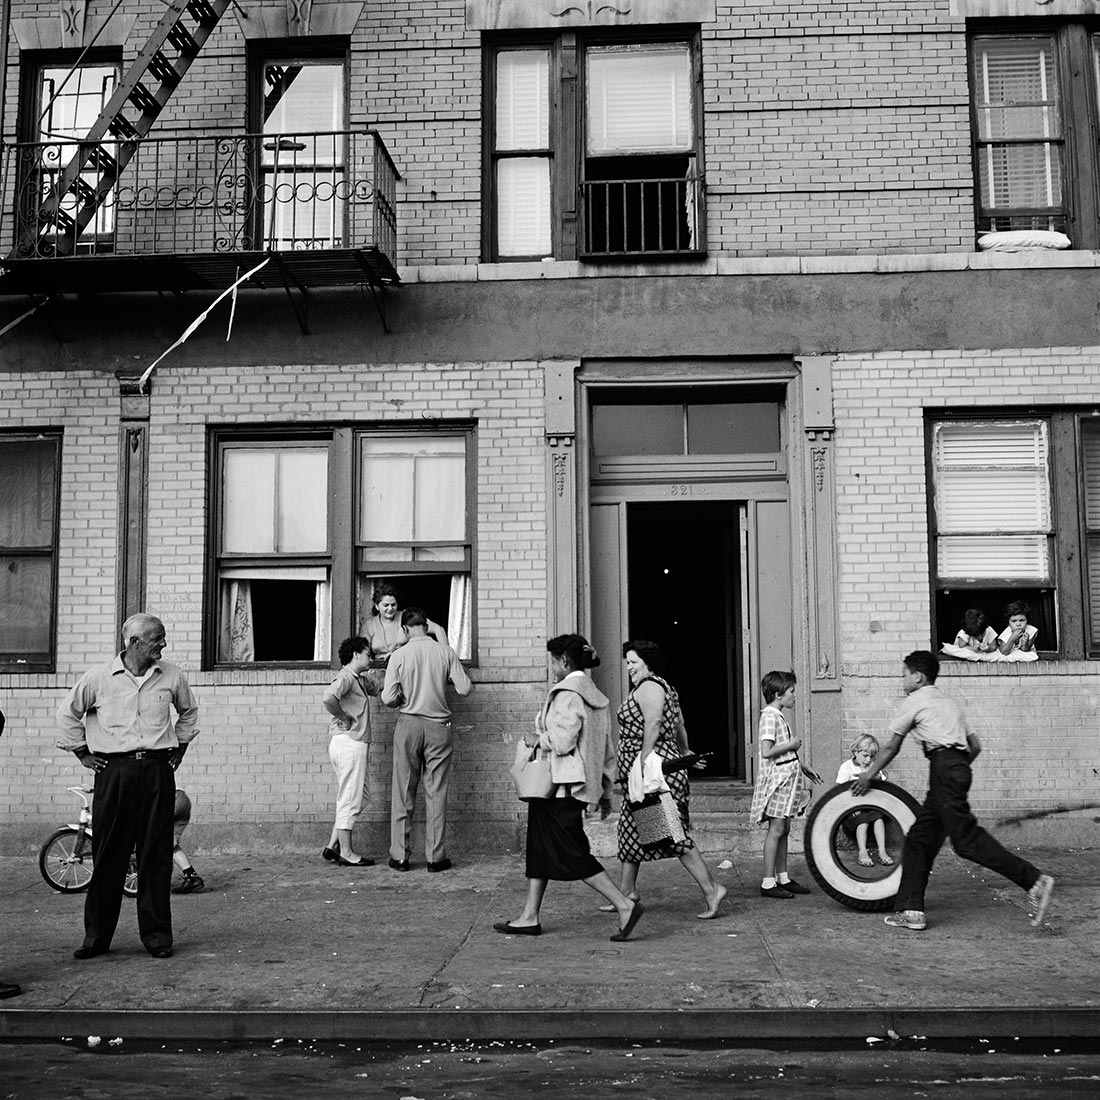 East 108th Street. September 28, 1959, New York, NY